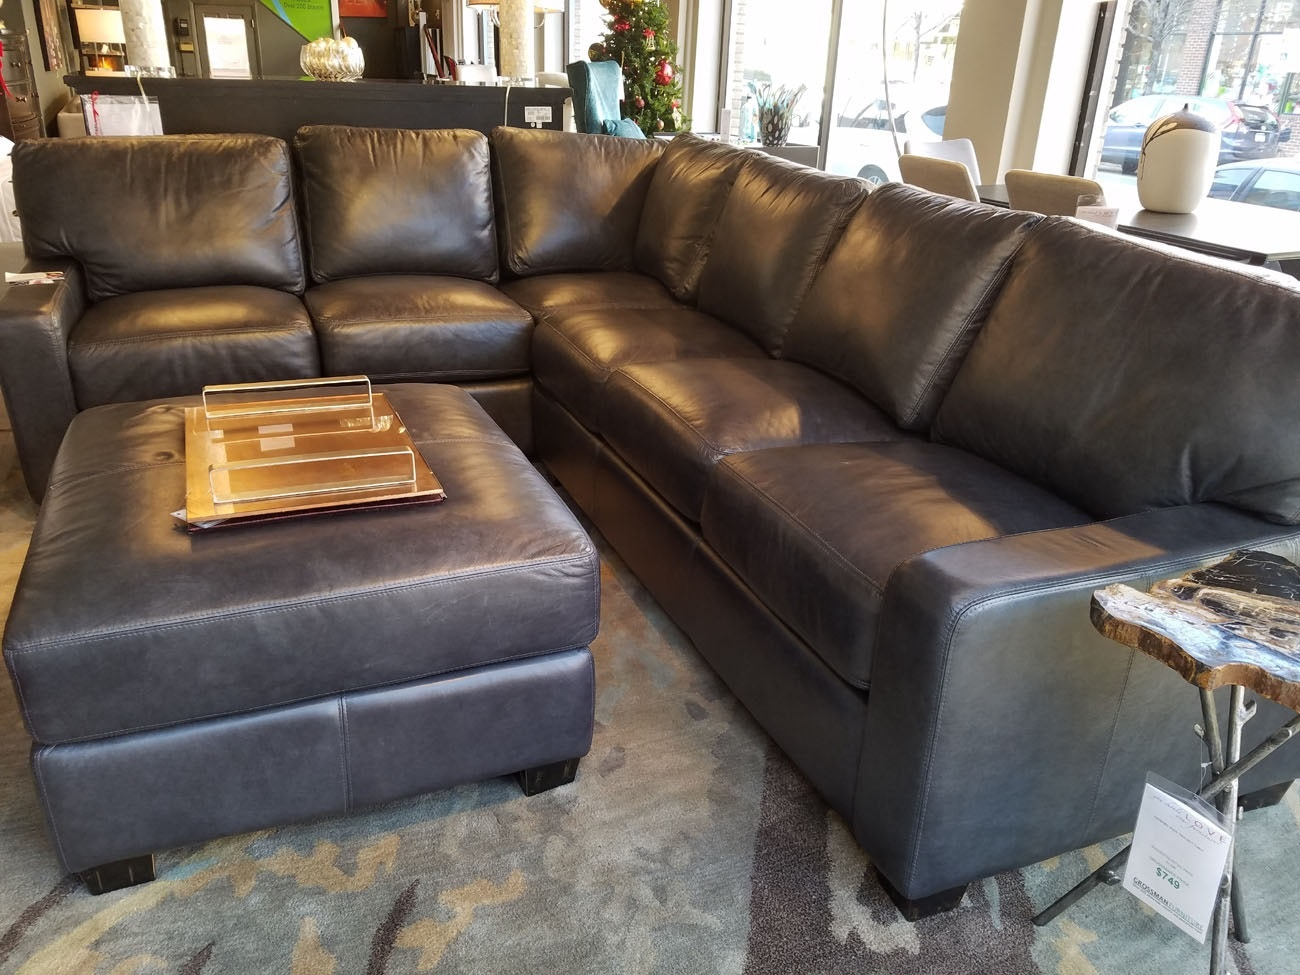 albany leather sofa west elm dunham review omnia furniture 2 piece sectional grey living room 151327 at grossman